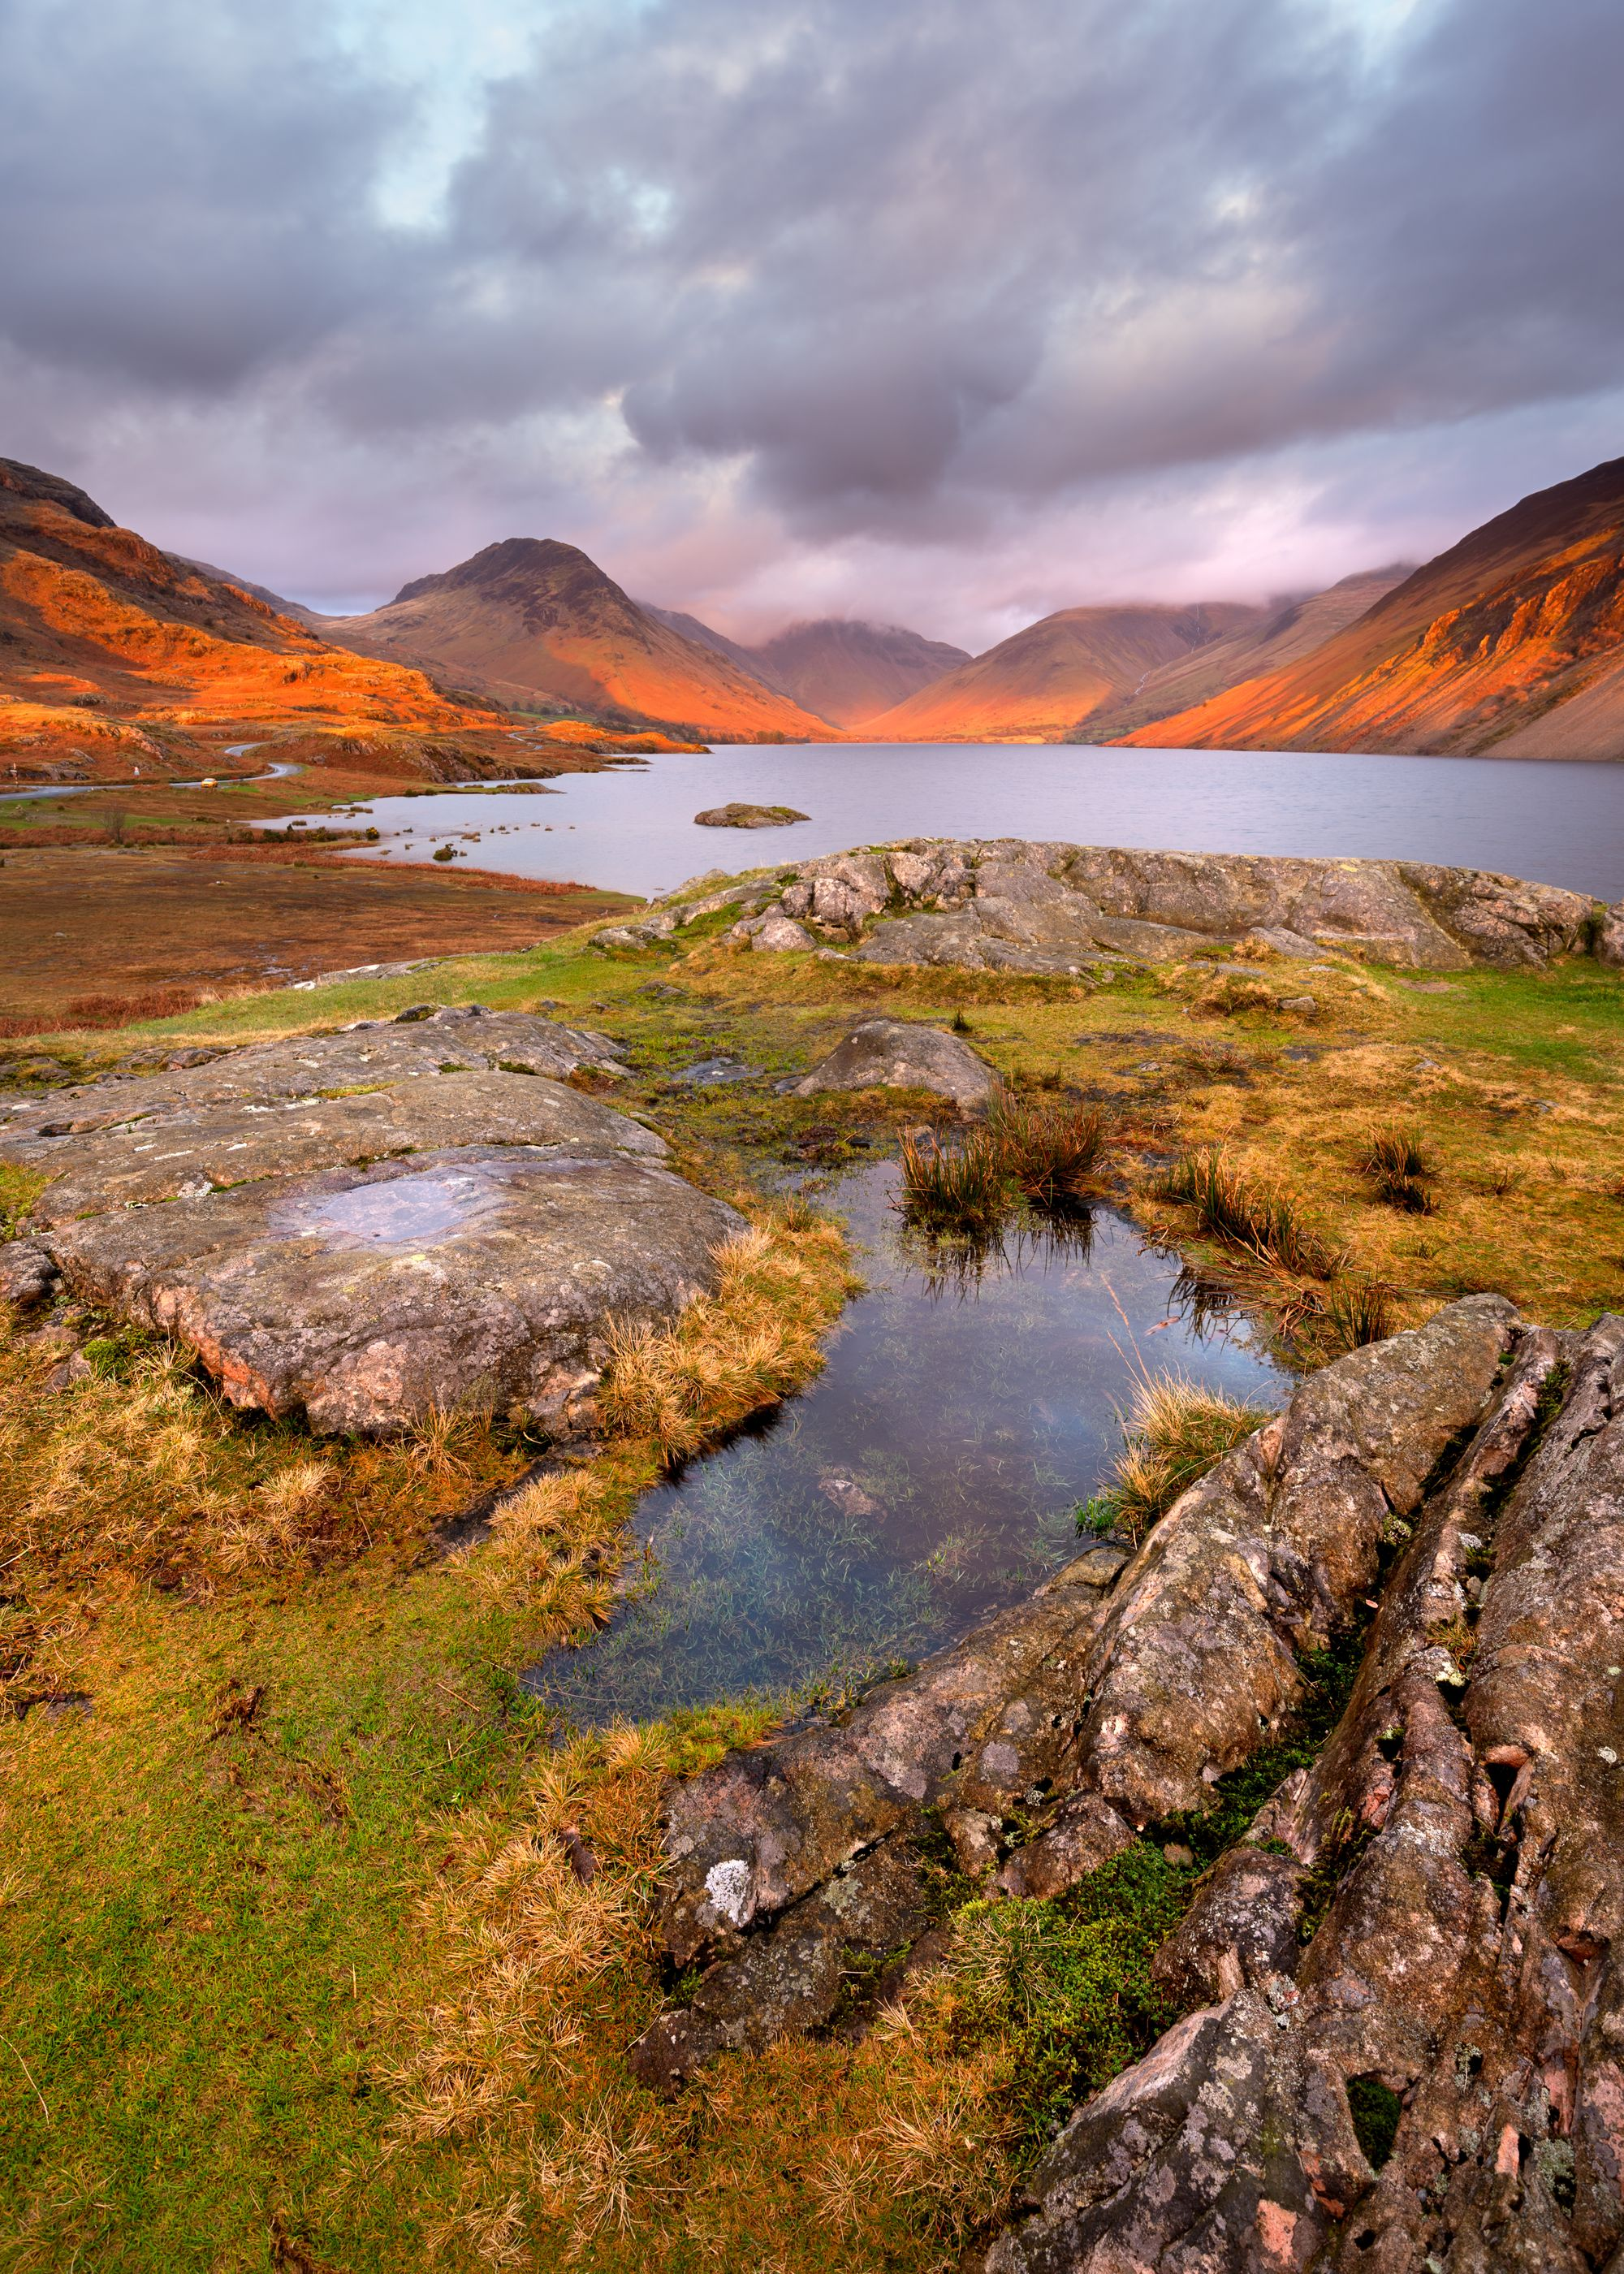 Scenic view of mountains and lake at sunset. Wastwater, Lake District.